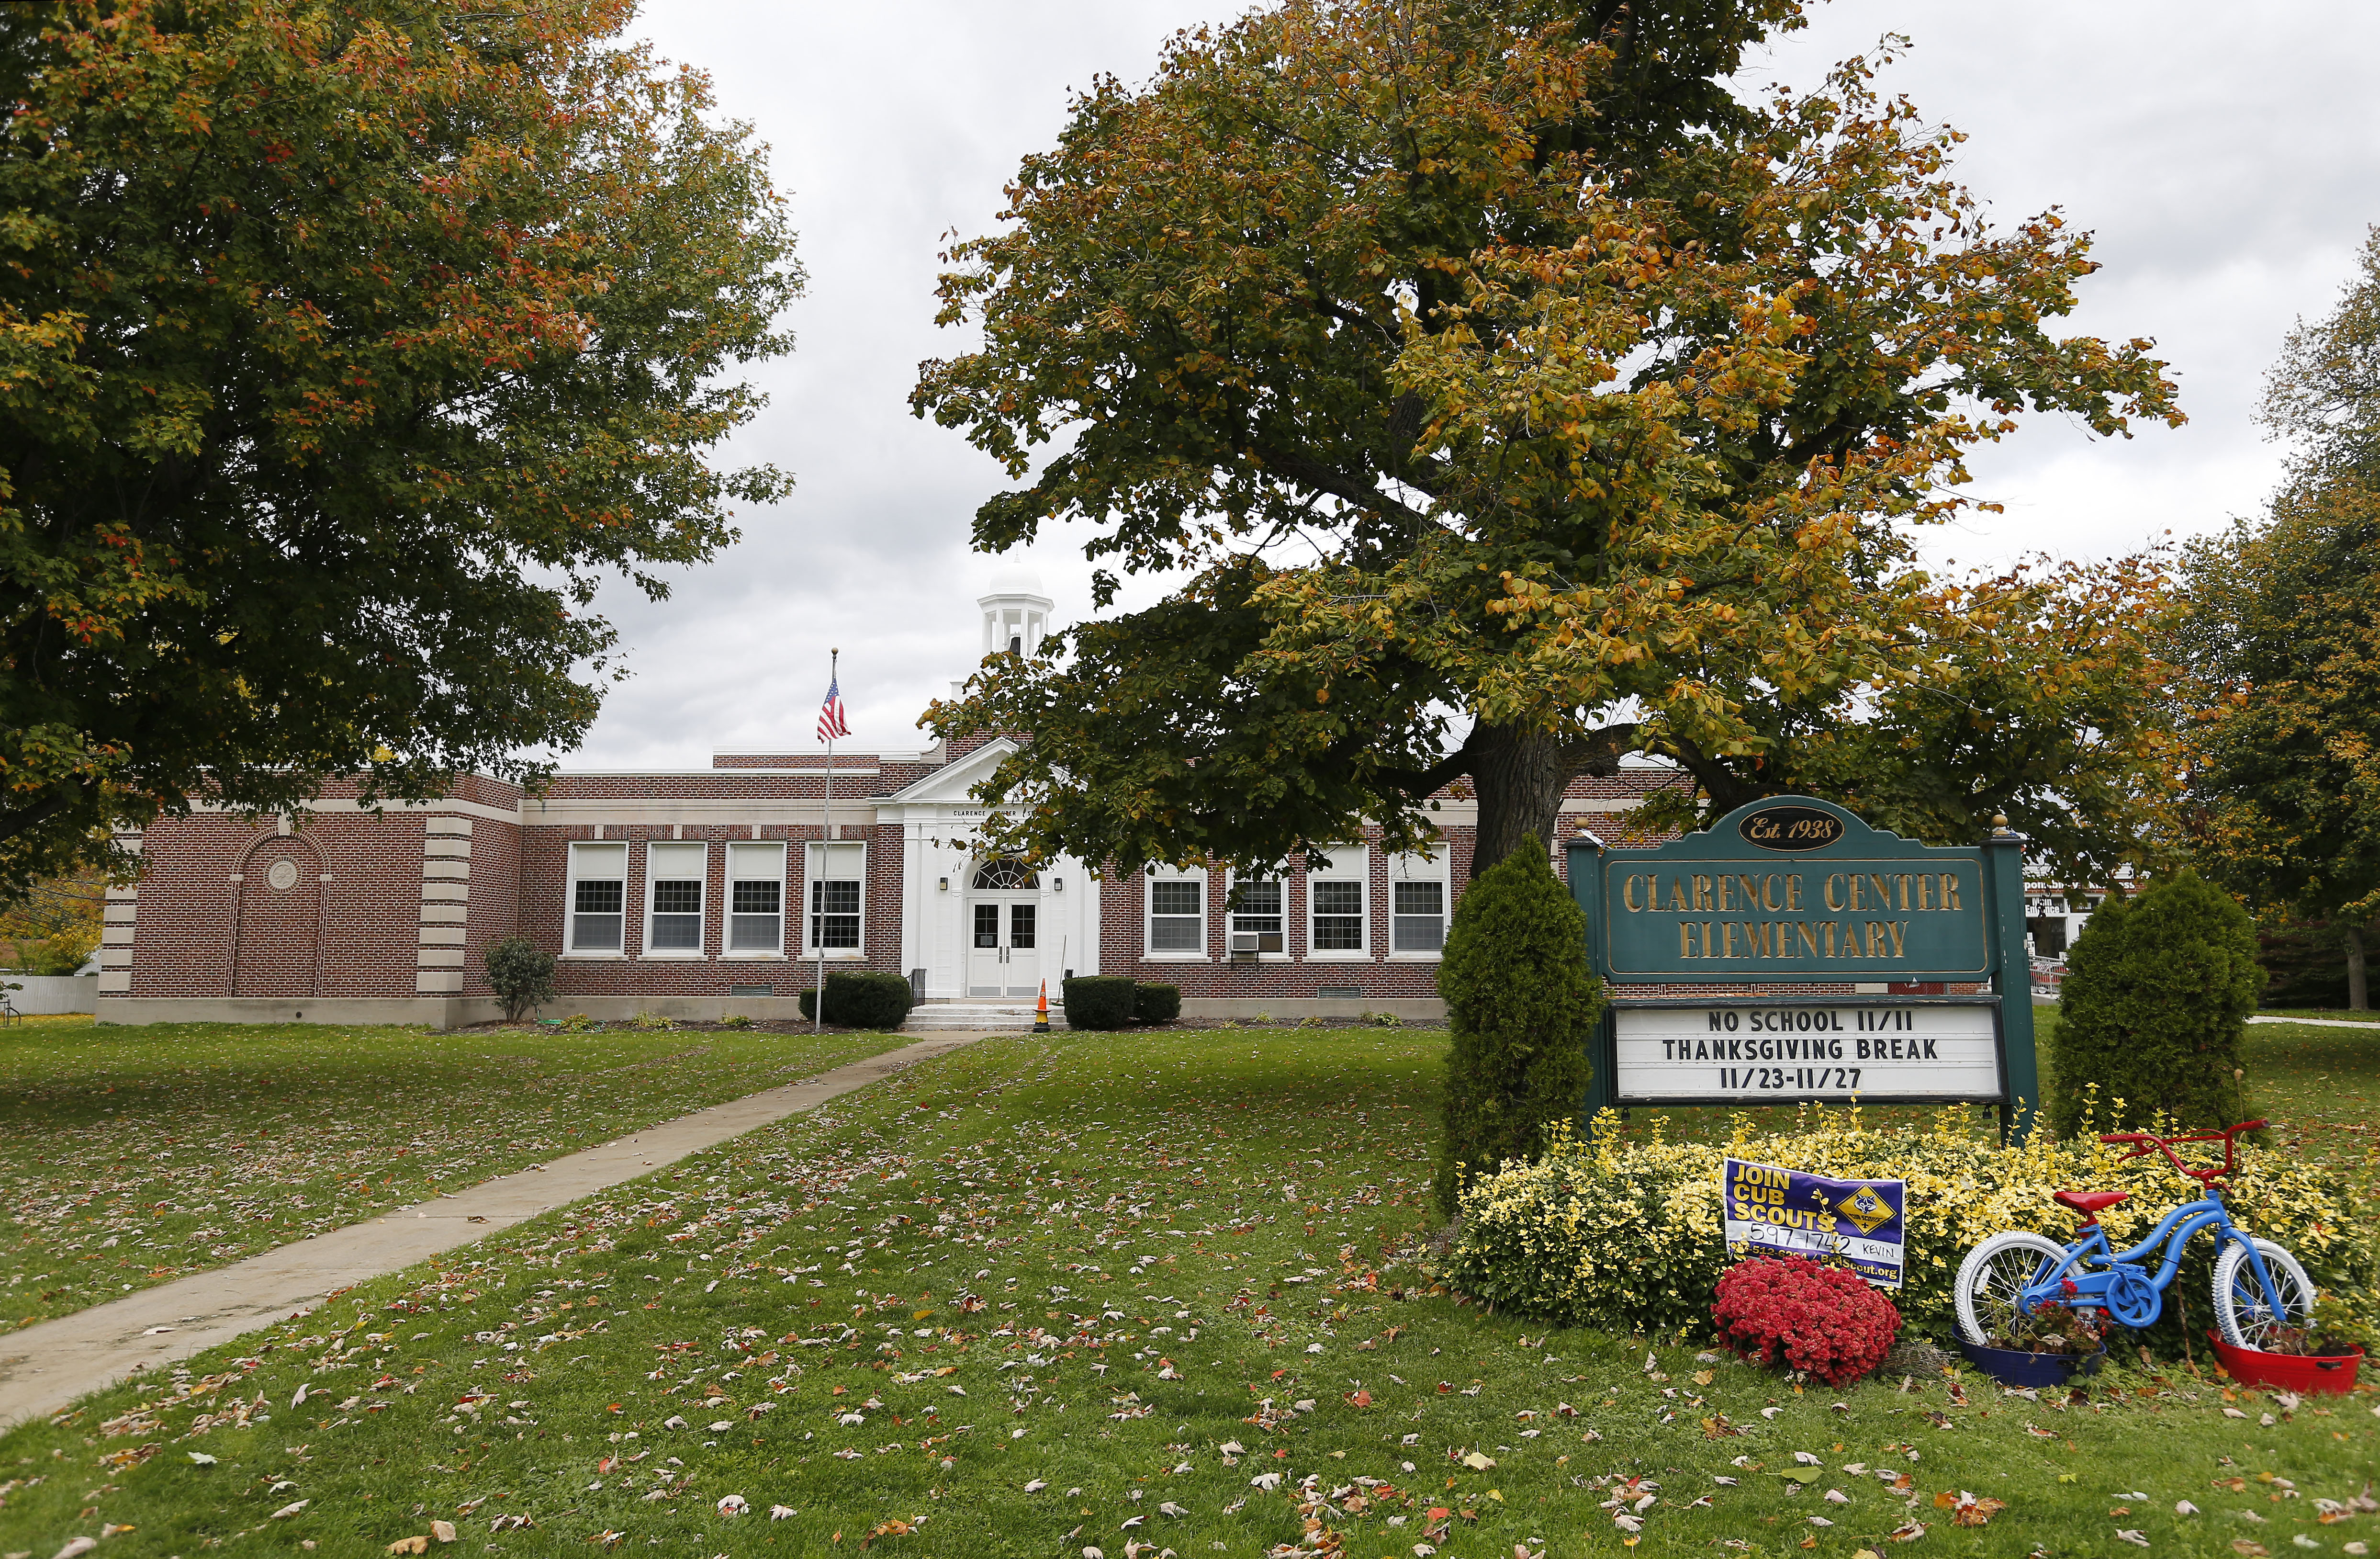 Clarence Center Elementary in Clarence Center. (Mark Mulville/The Buffalo News)